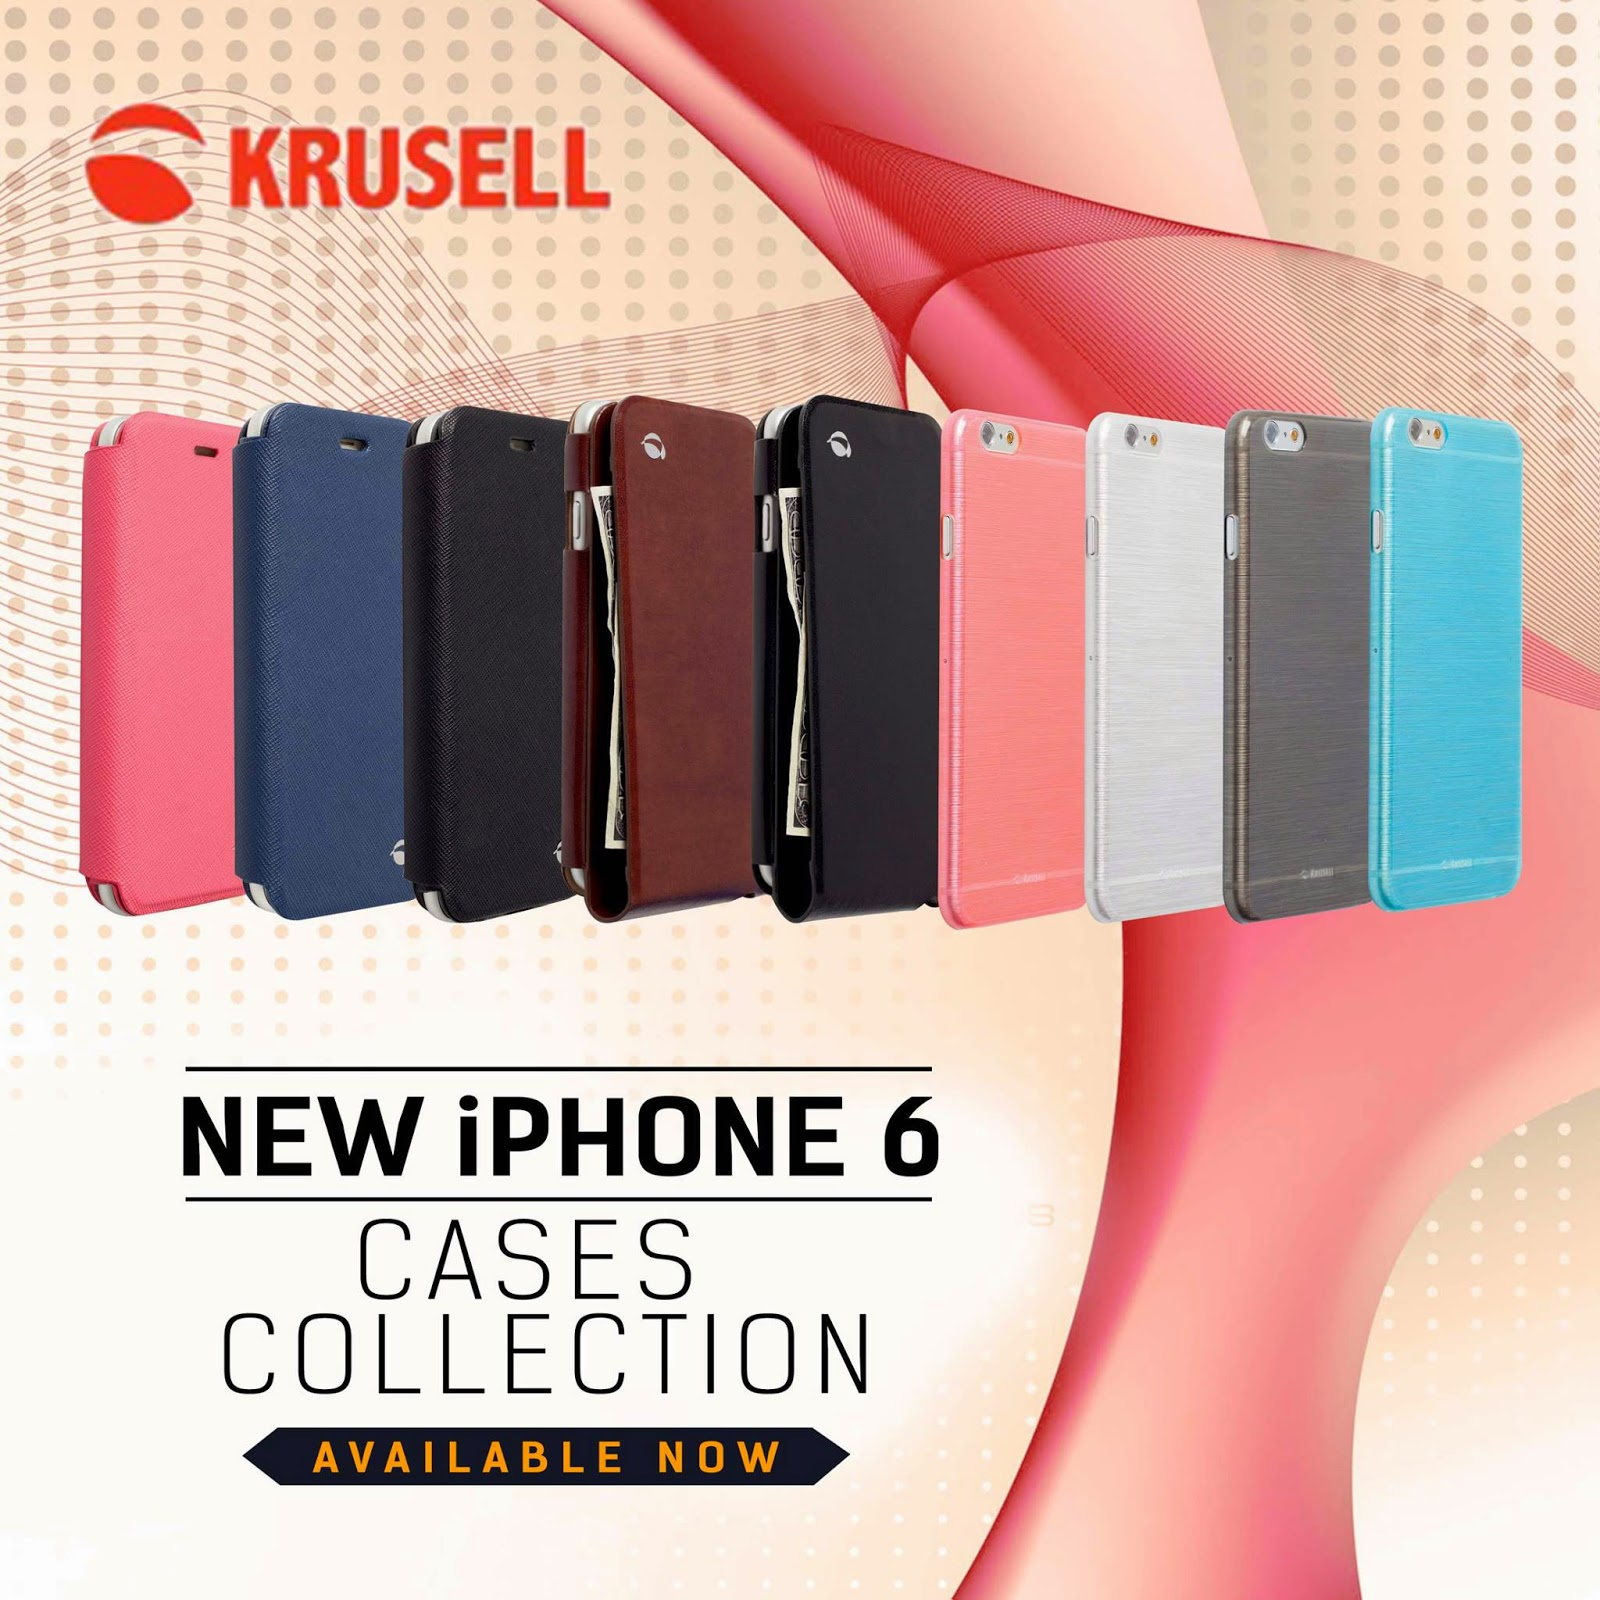 iPhone 6 Krusell casing from Kimstore